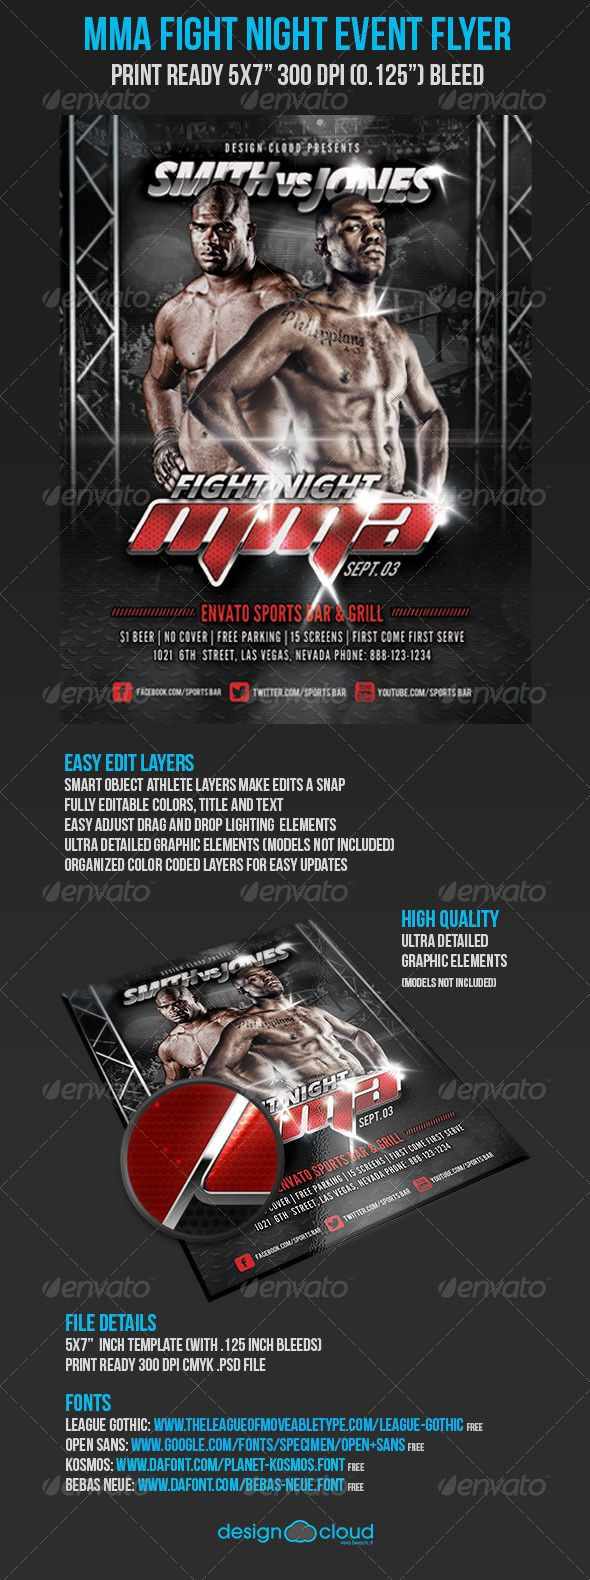 MMA Fight Night UFC Event Promo Flyer – Ufc Flyer Template